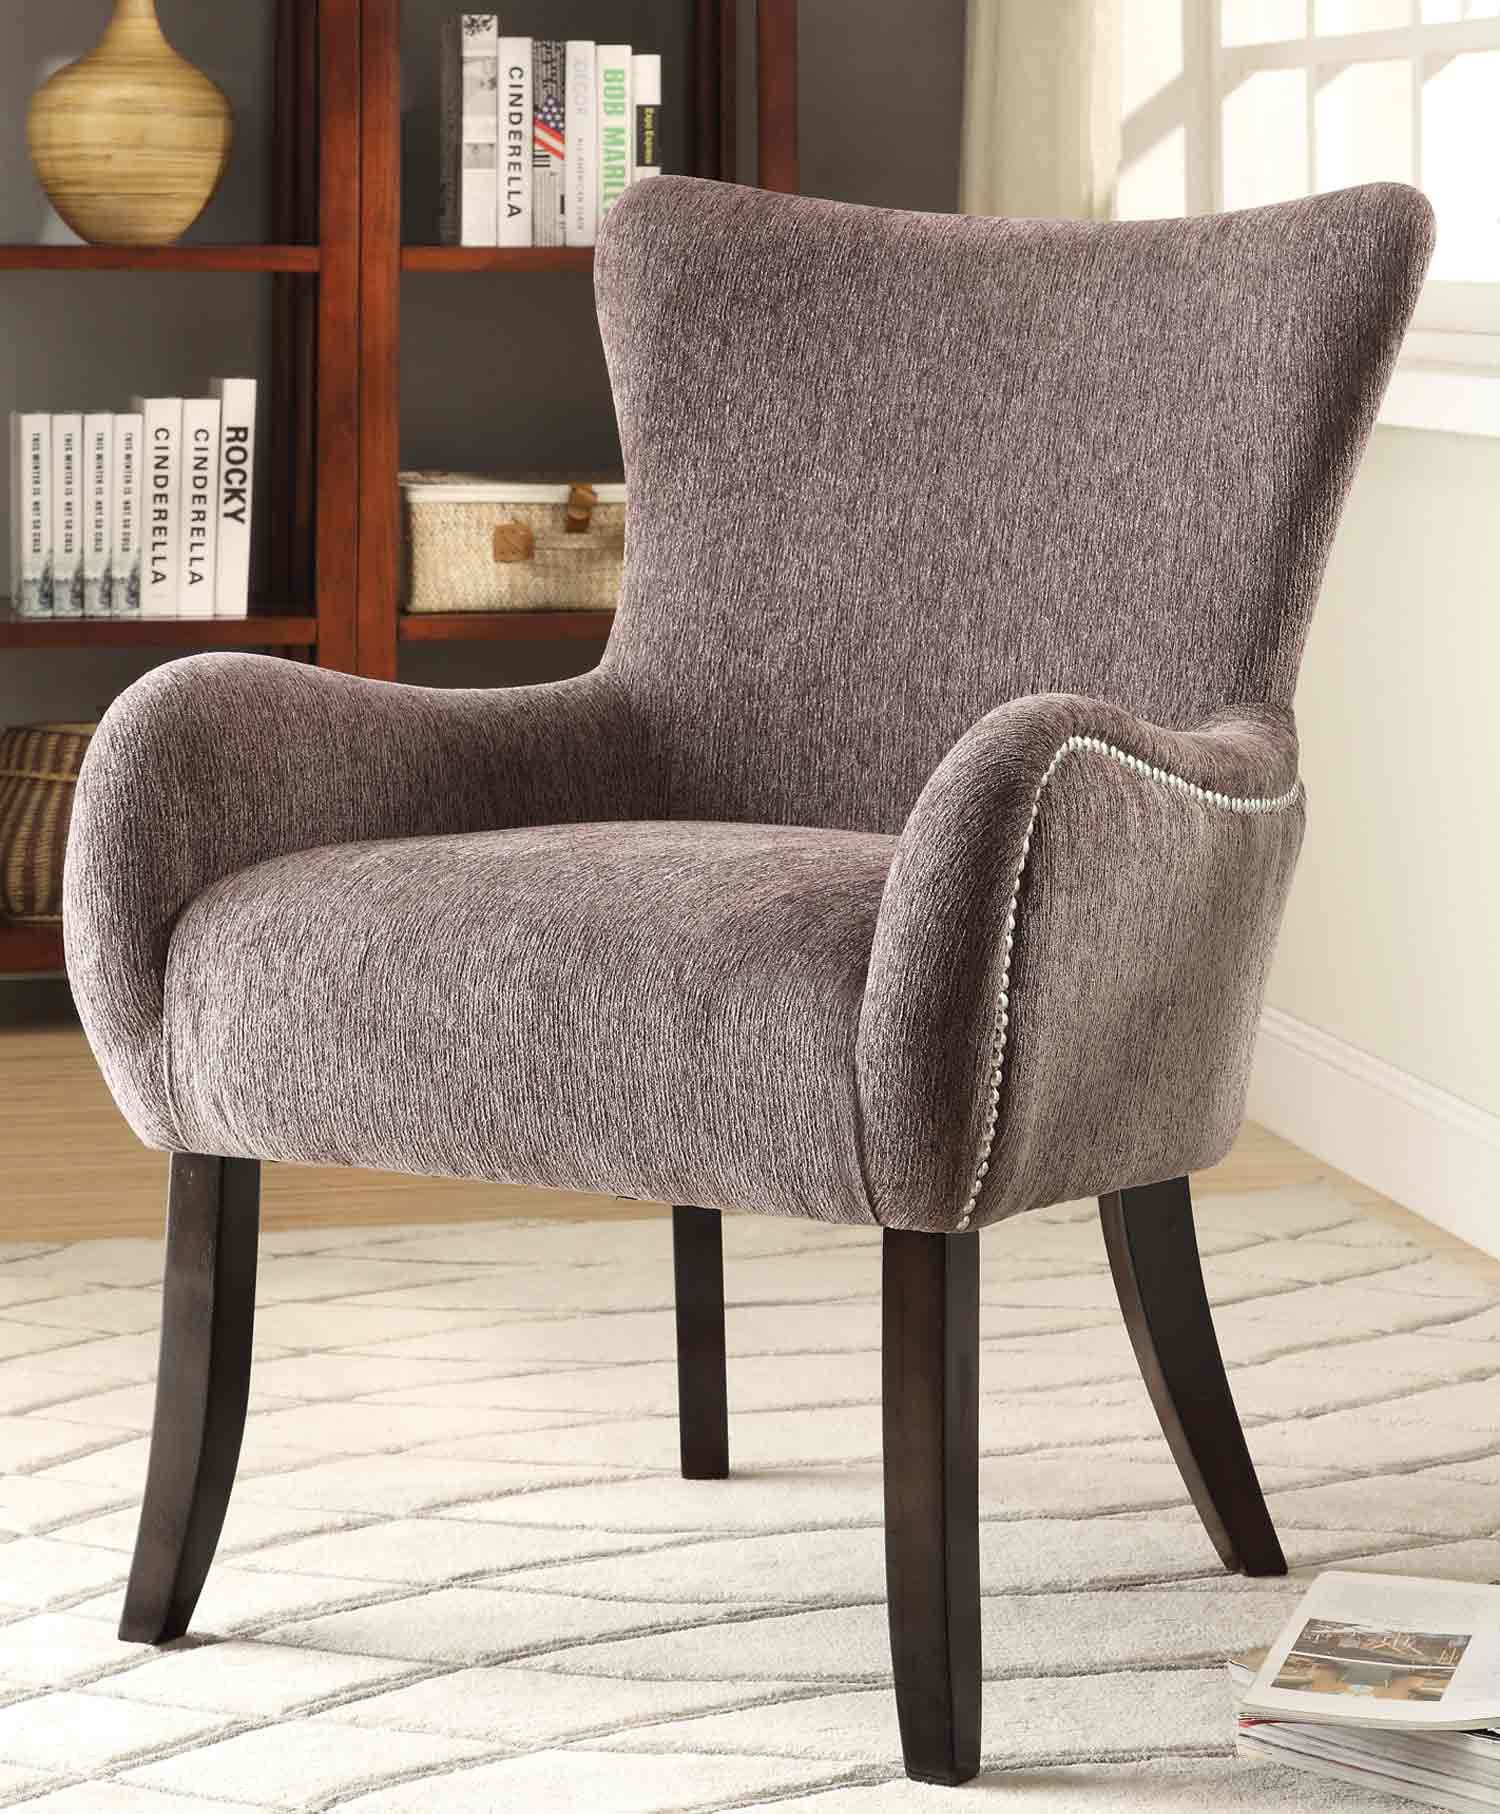 Coaster 902504 Accent Chair - Grey